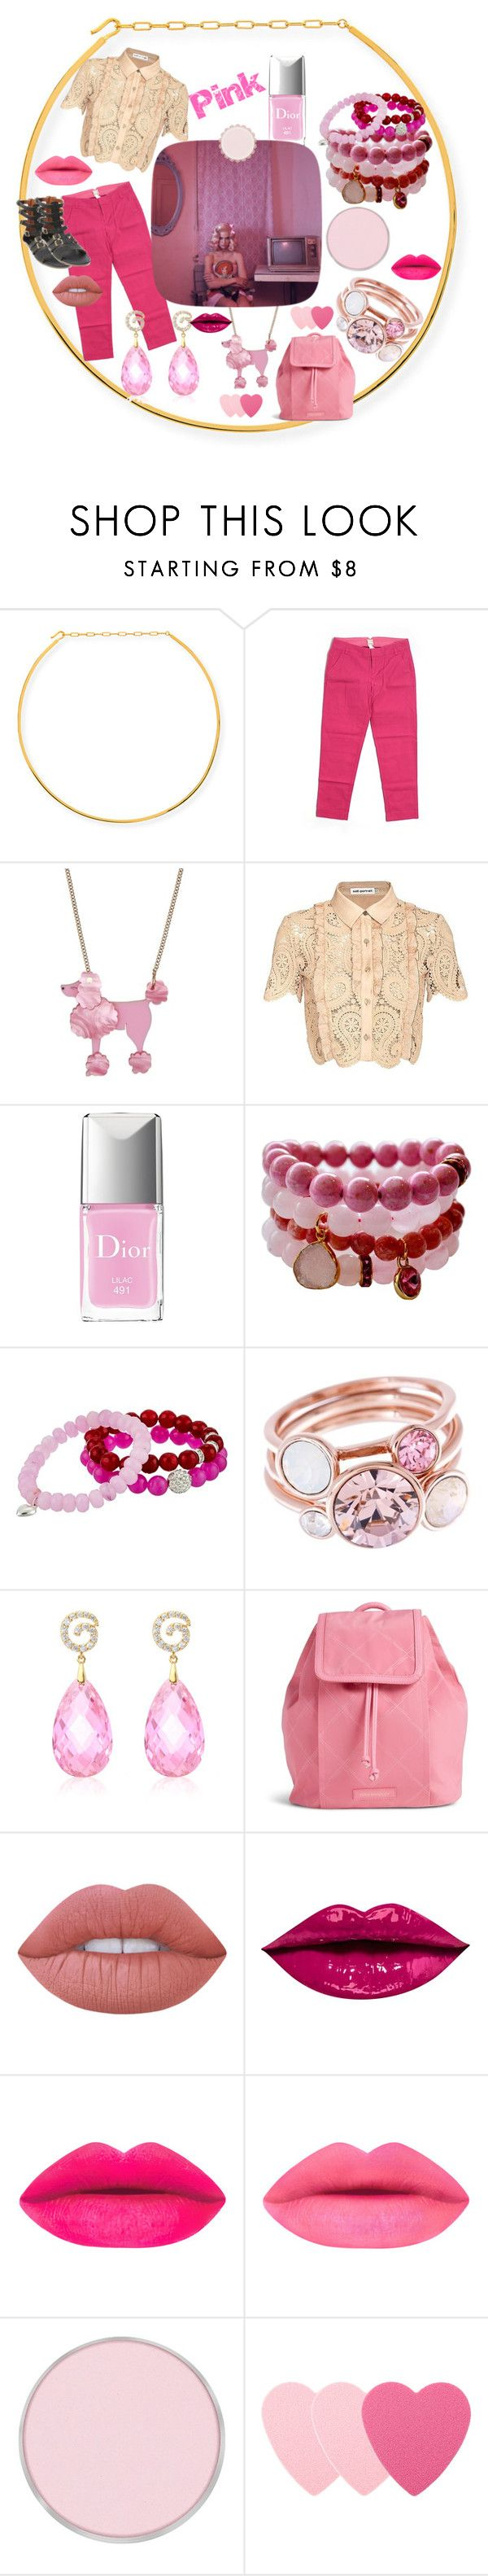 """Pink"" by michelle858 ❤ liked on Polyvore featuring Jennifer Zeuner, Ecru, self-portrait, Christian Dior, Dee Berkley, Ted Baker, Vera Bradley, Lime Crime and Sephora Collection"